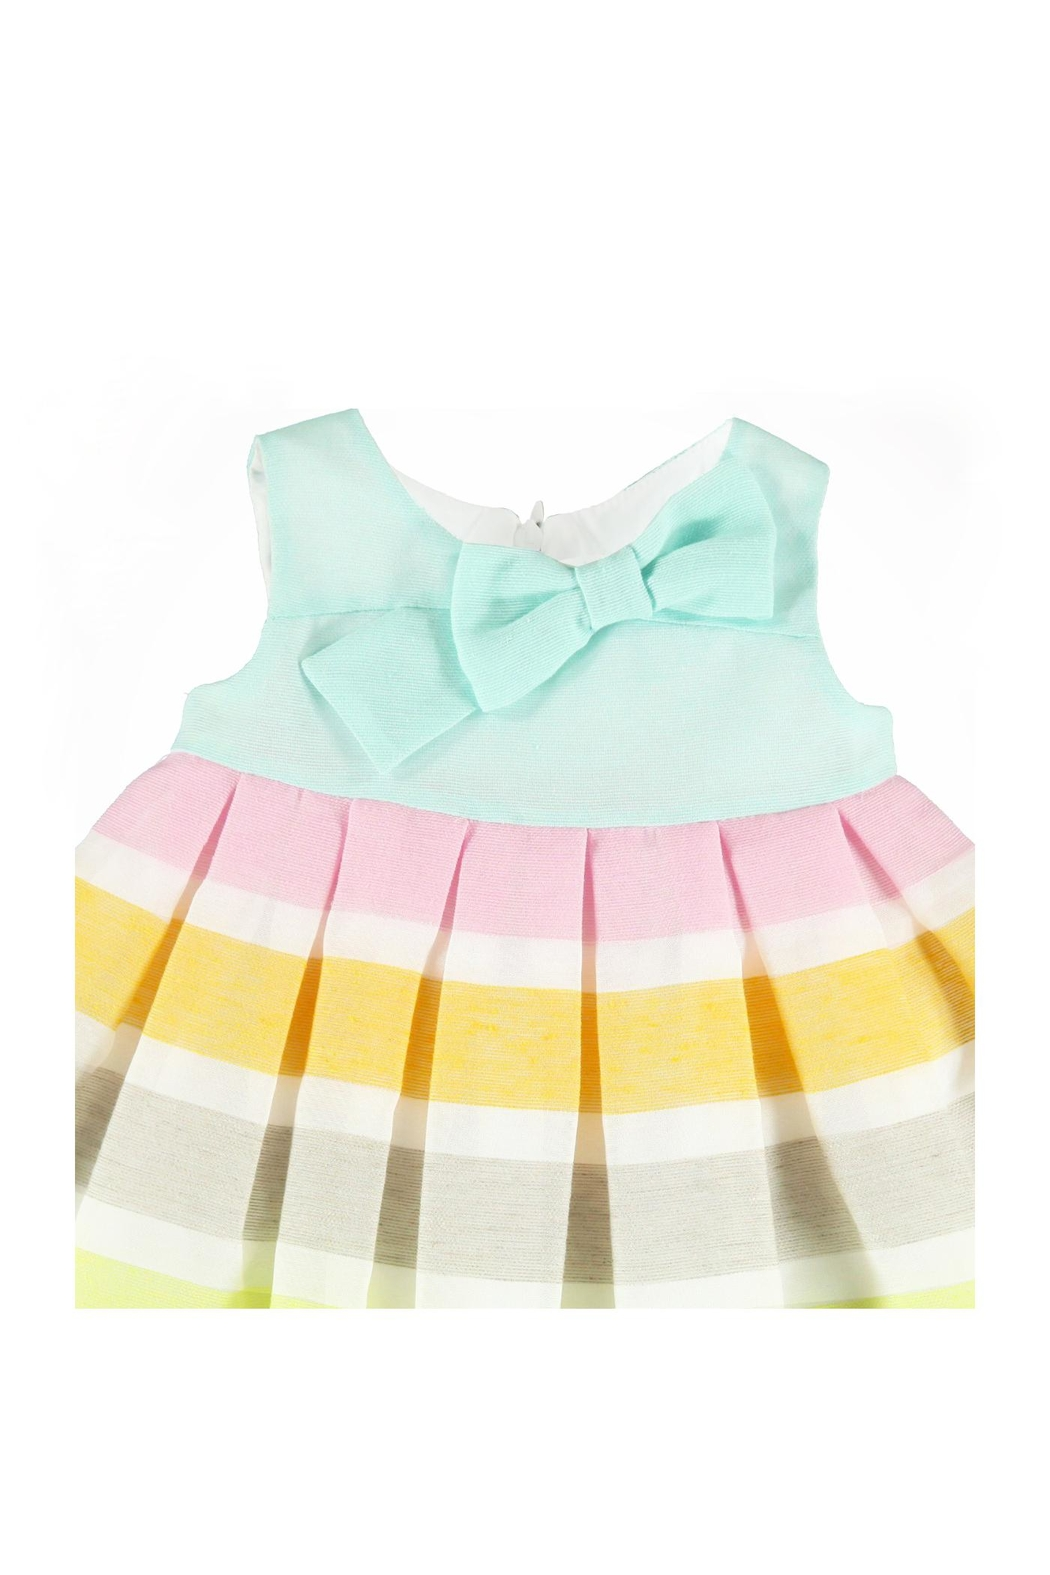 Mayoral Sherbert Striped Dress - Front Full Image